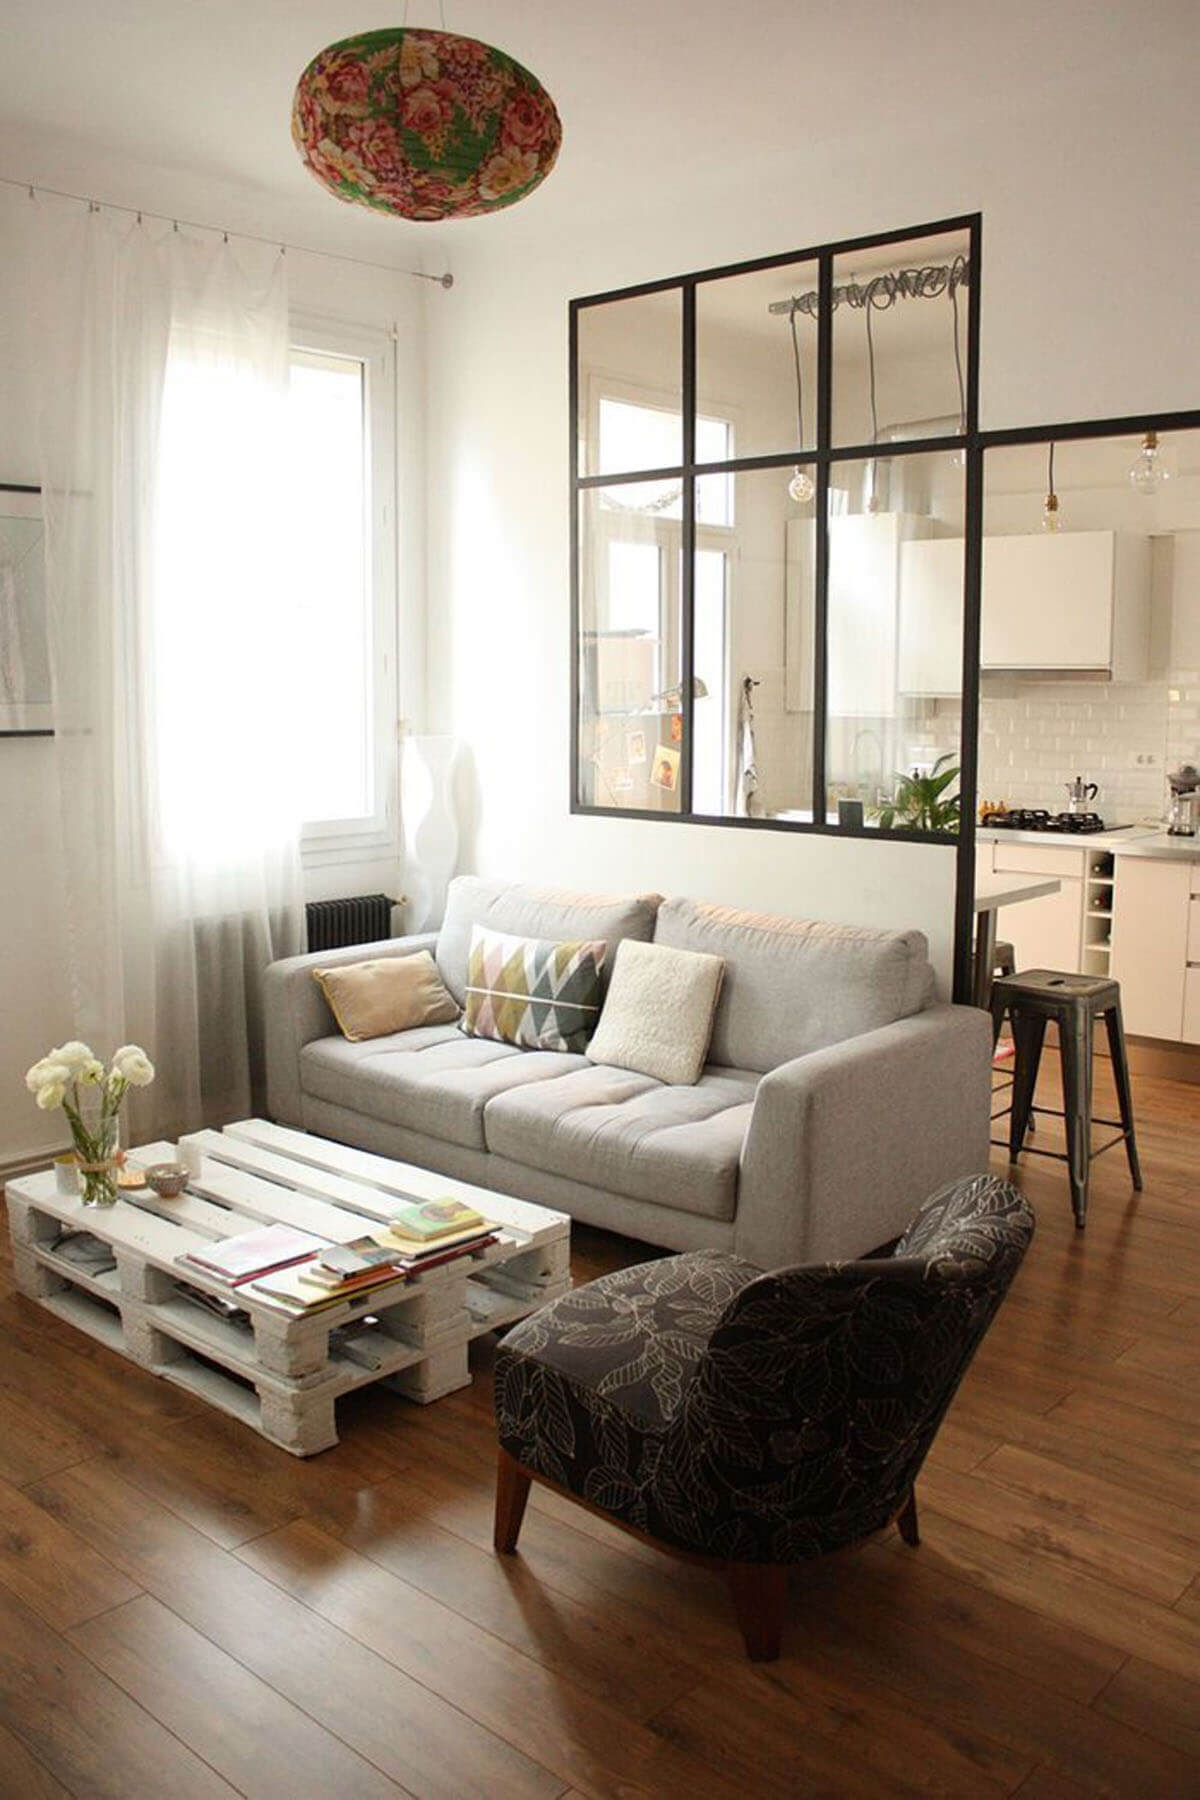 25 Best Small Living Room Decor and Design Ideas for 2020